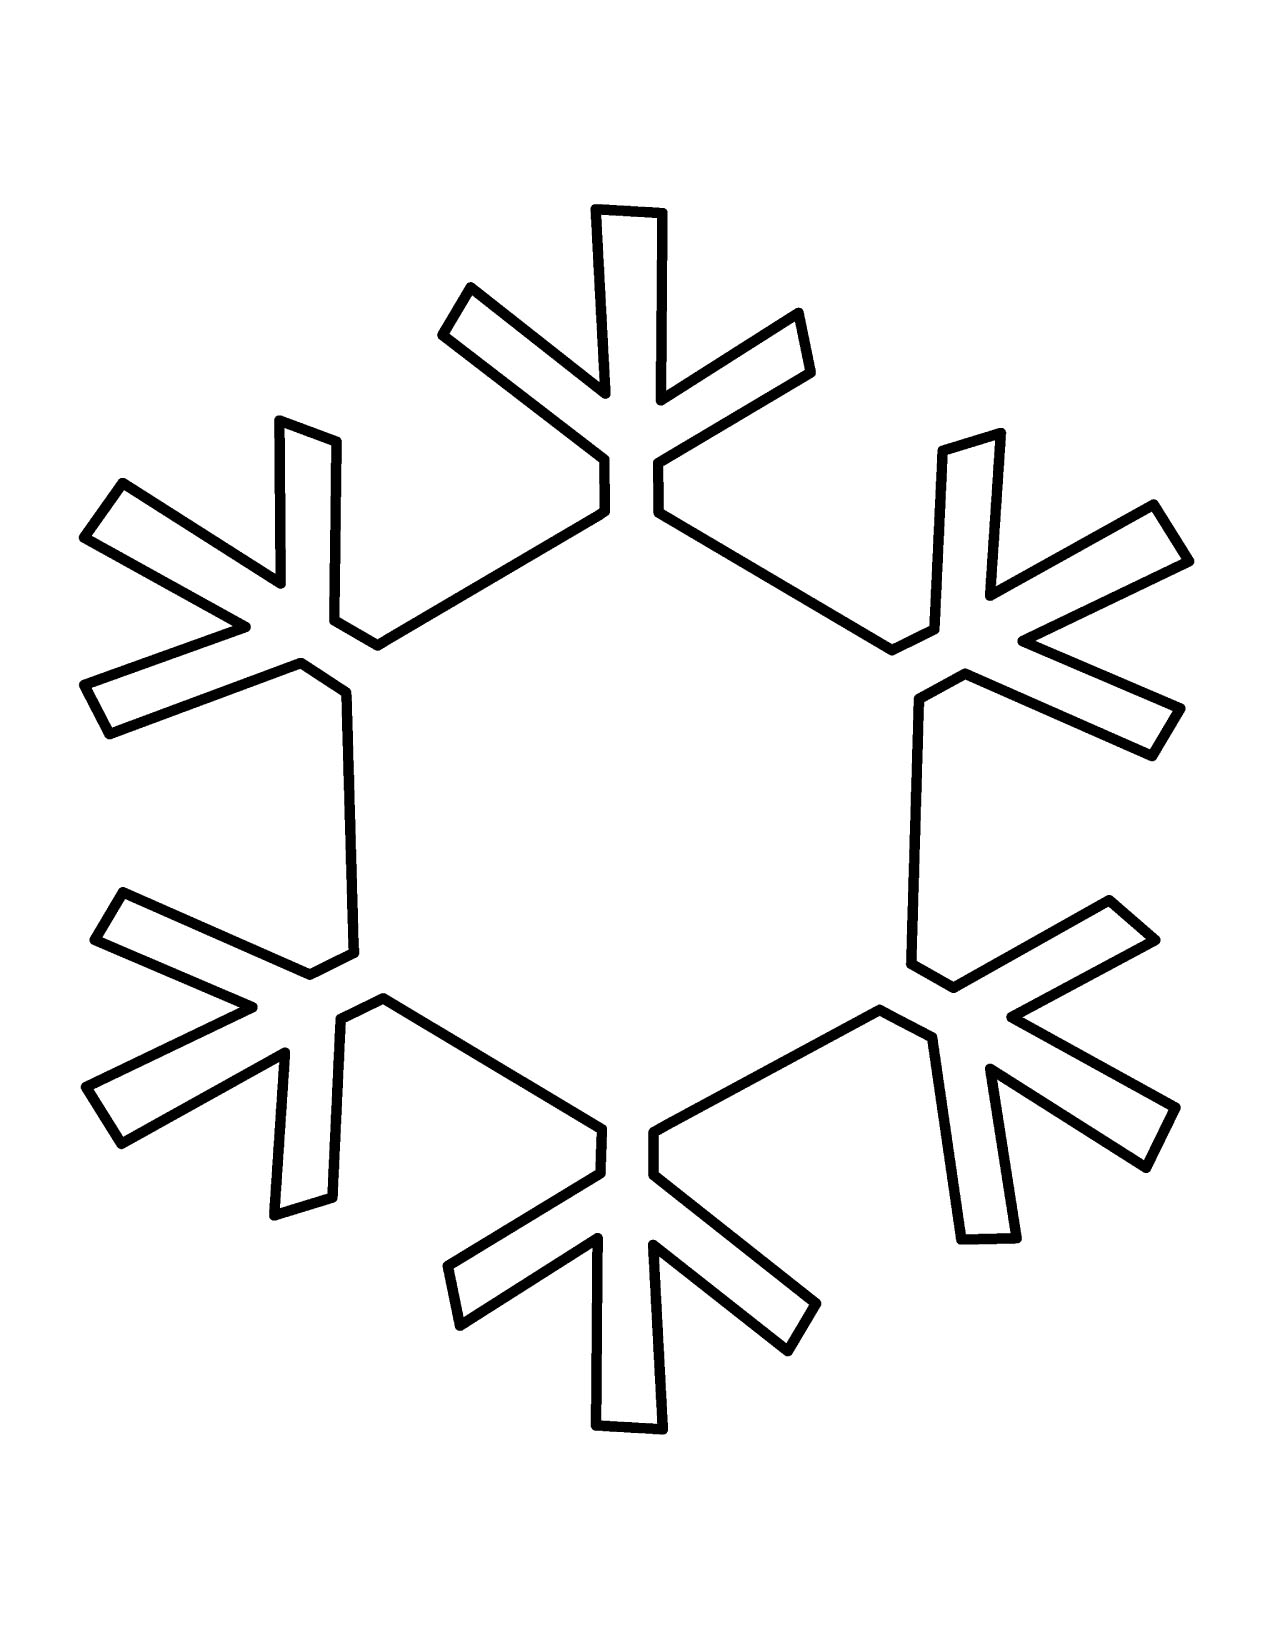 Free Small Snowflake Clipart, Download Free Clip Art, Free.